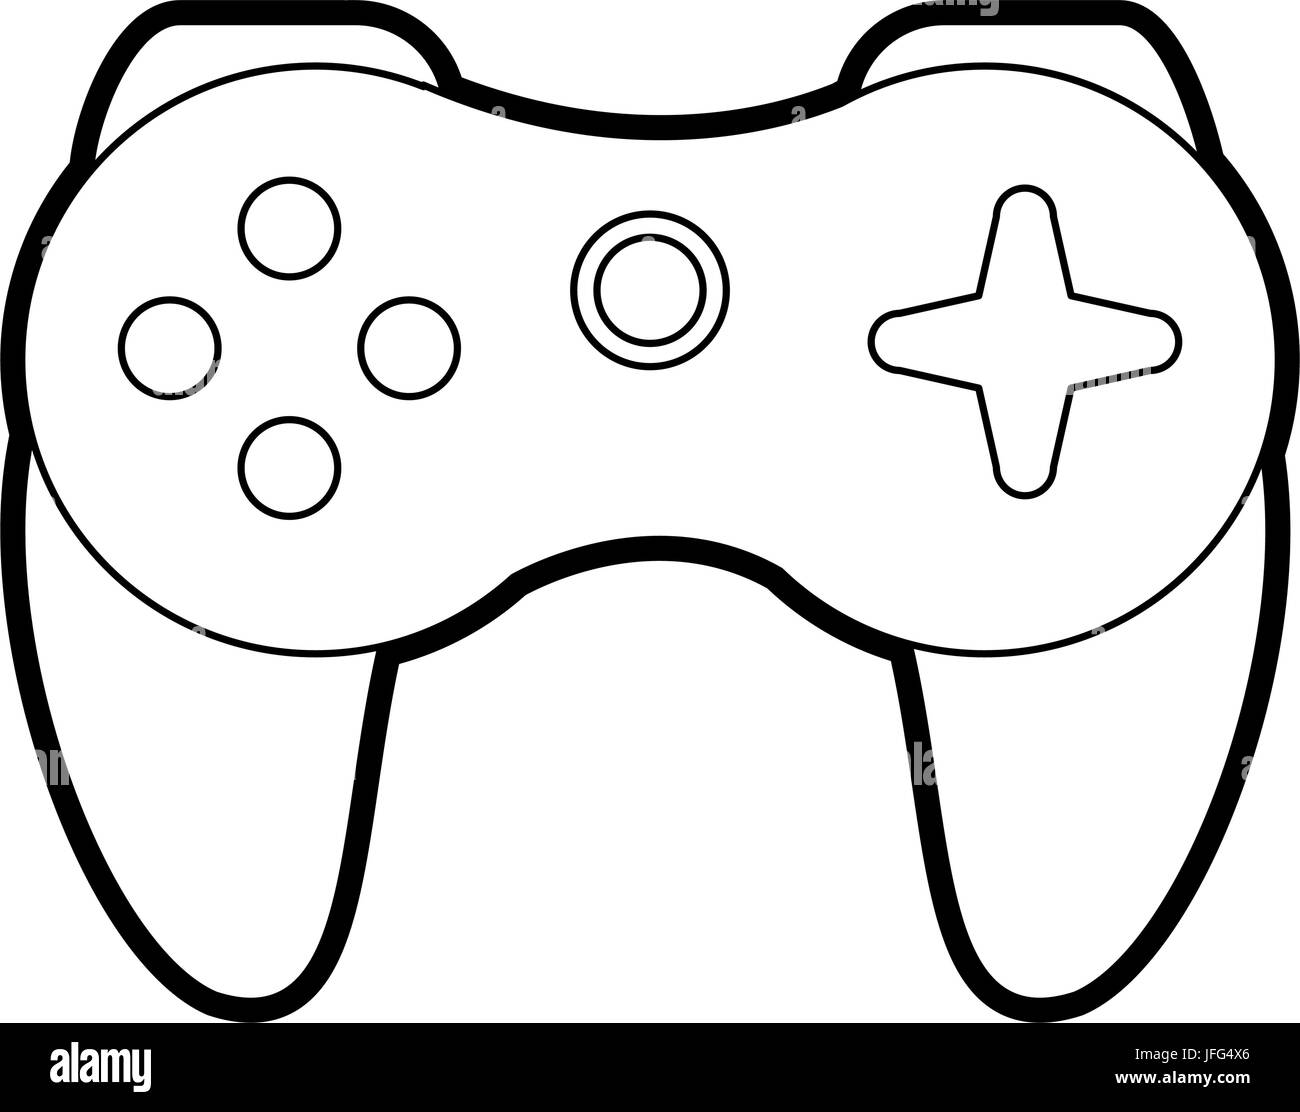 Video games accessories - Stock Image